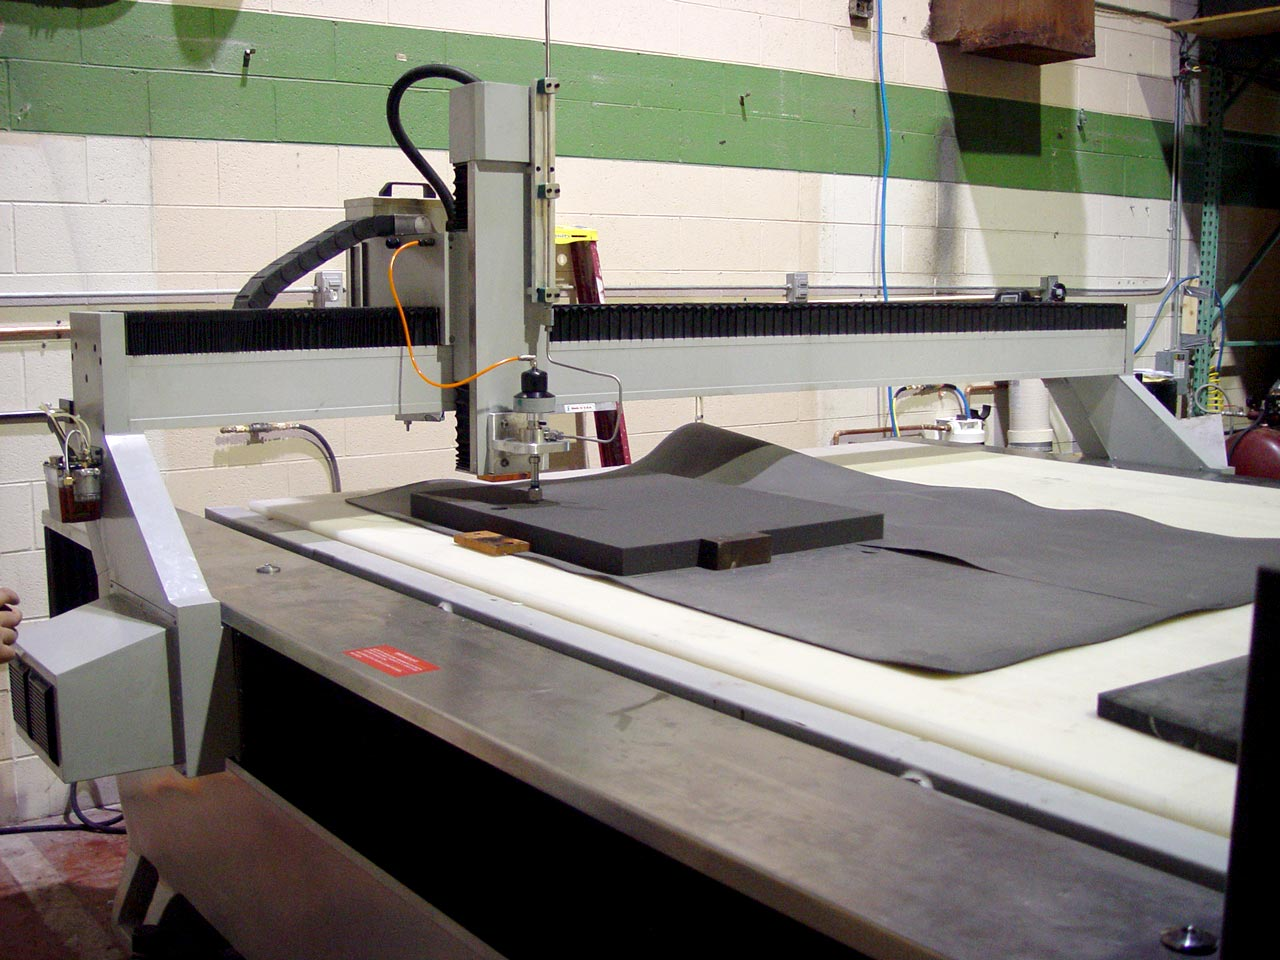 Waterjet Cutting Offers Fast And Affordable Foam Fabrication